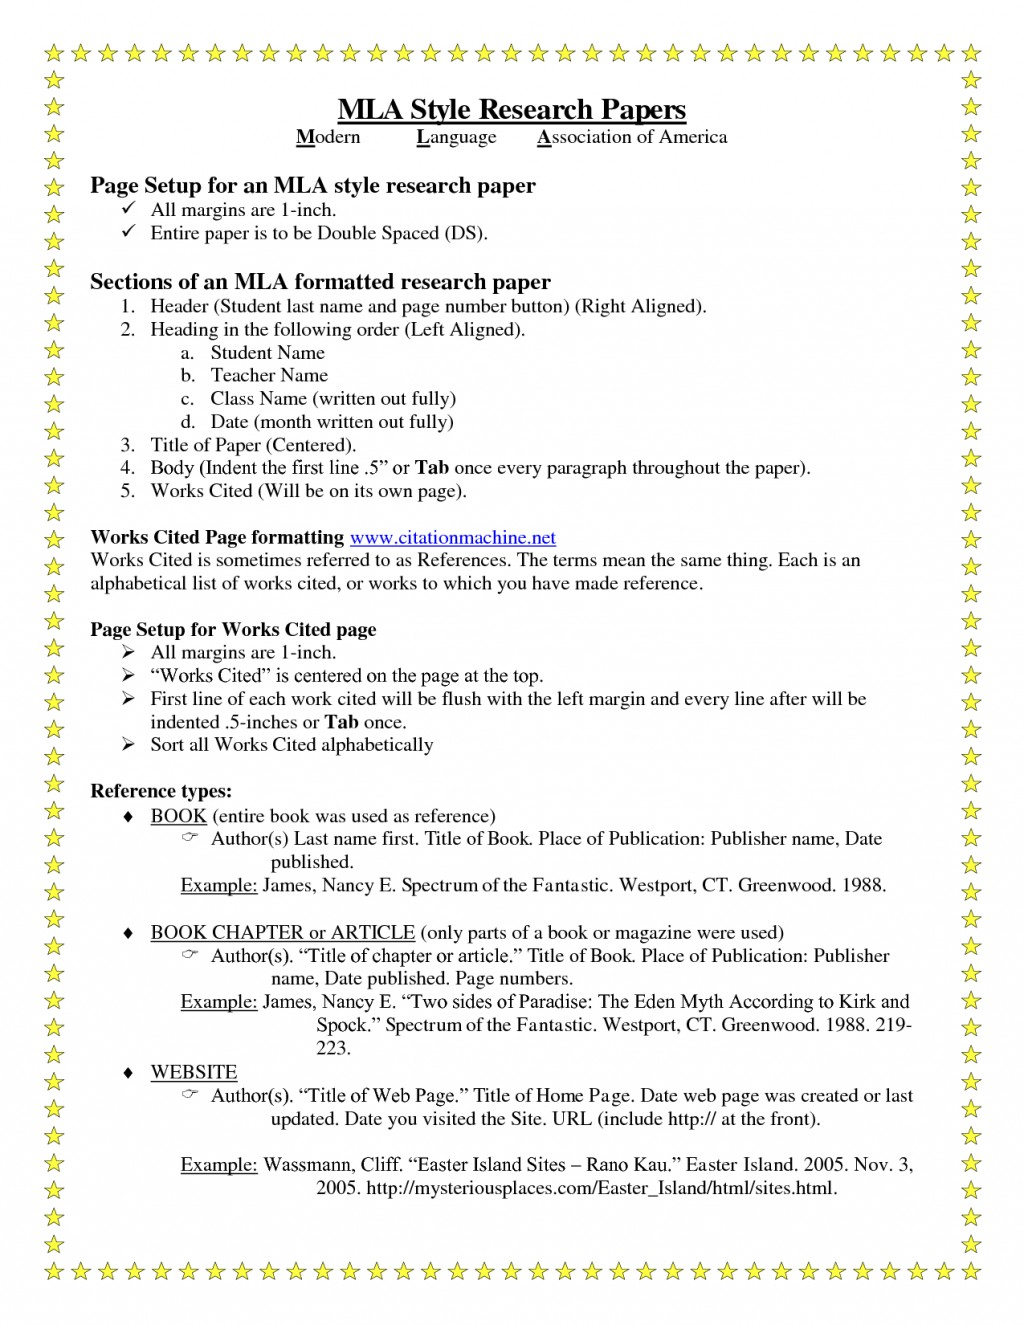 006 Research Paper Order Of Headings Wonderful A Reviews Making Large